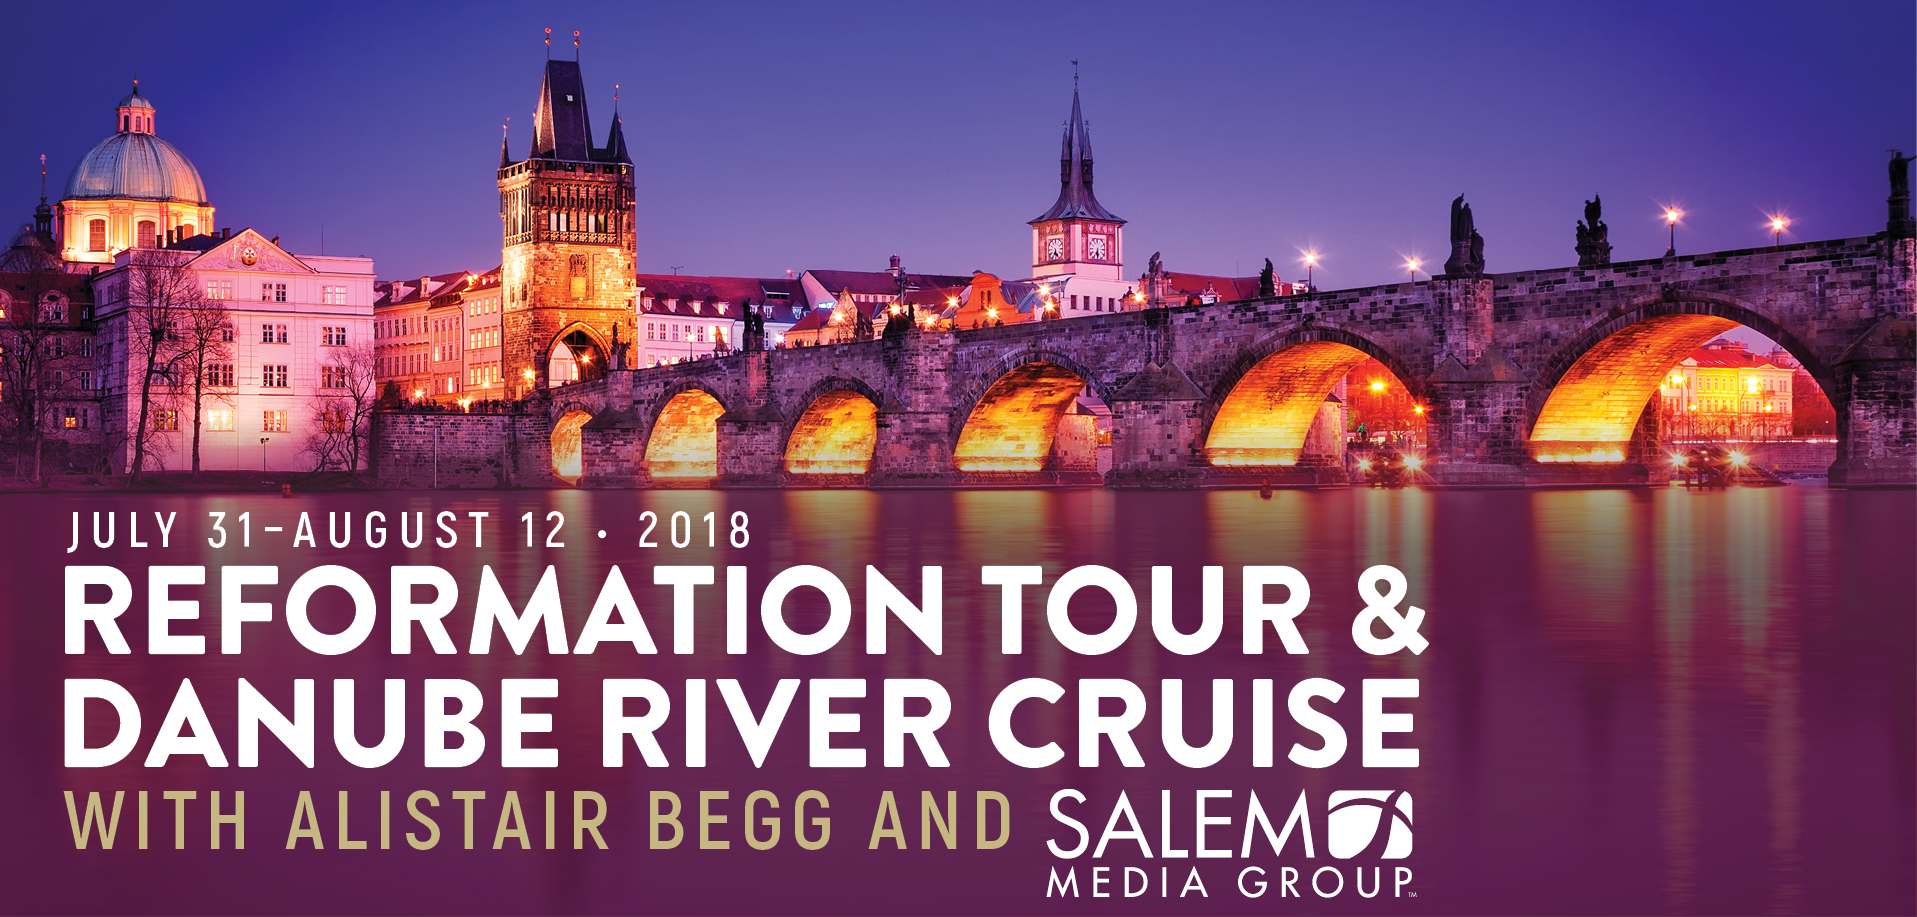 Take a Christian Cruise with Salem Media Group - European Reformation Tour - July 31 - August 12, 2018